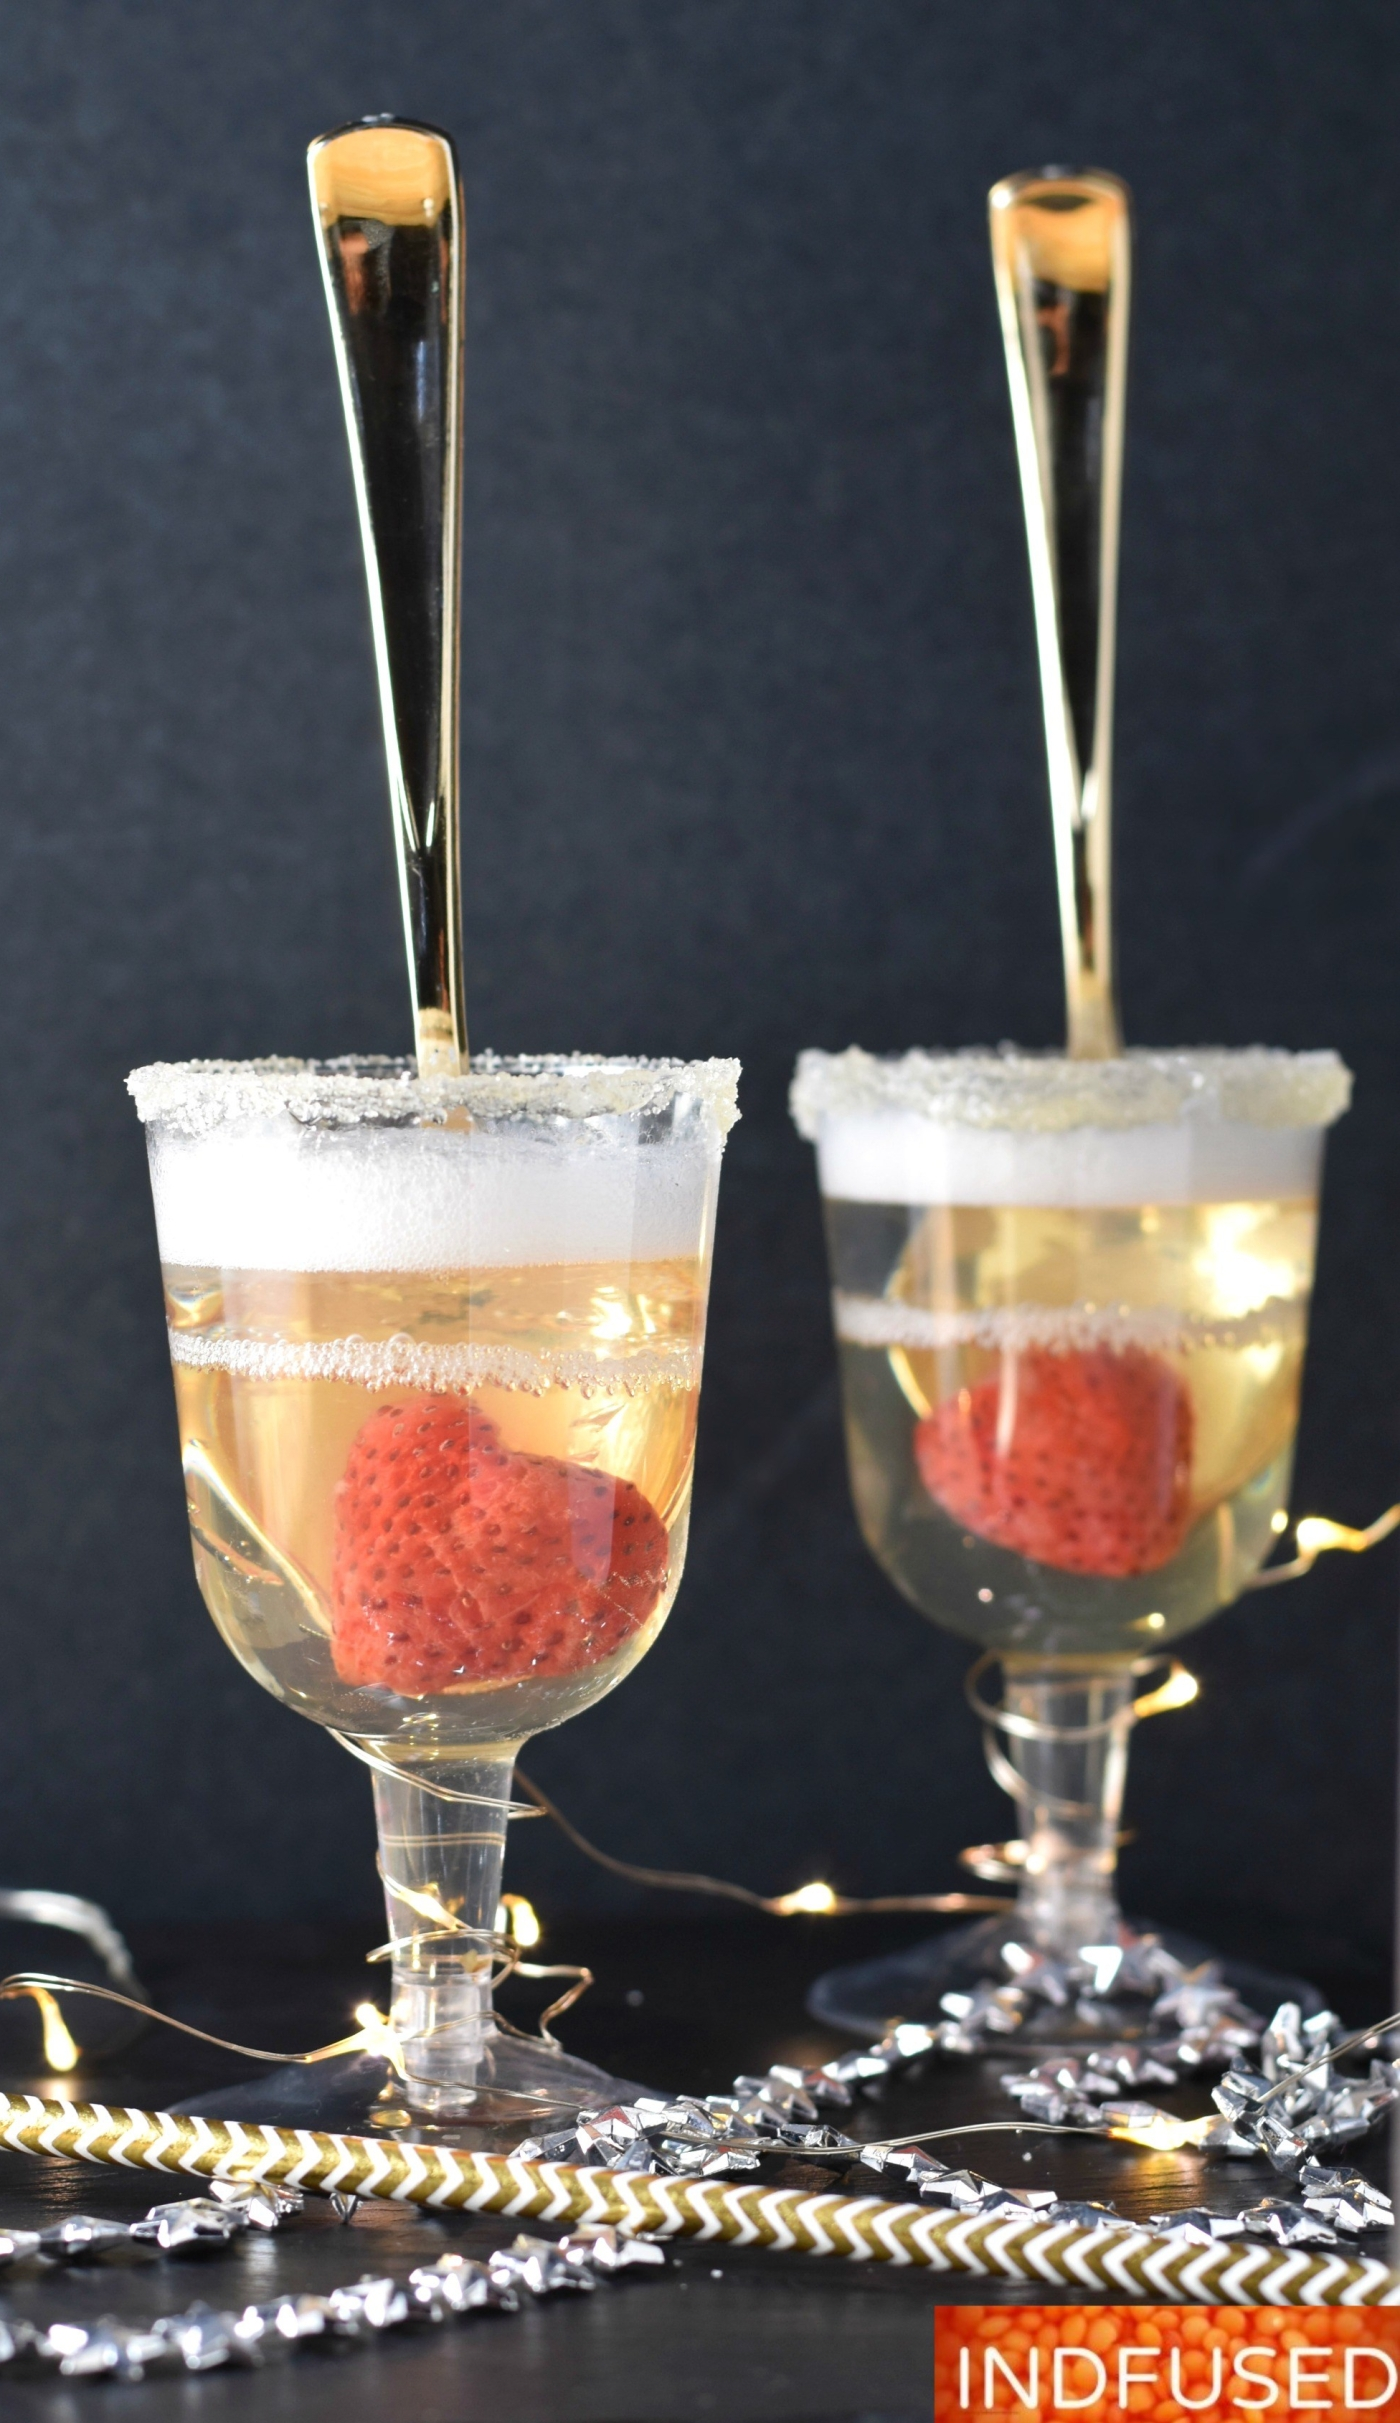 Dazzling Champagne Jelly Flutes for New Years party serves 2. setting time 3 hours